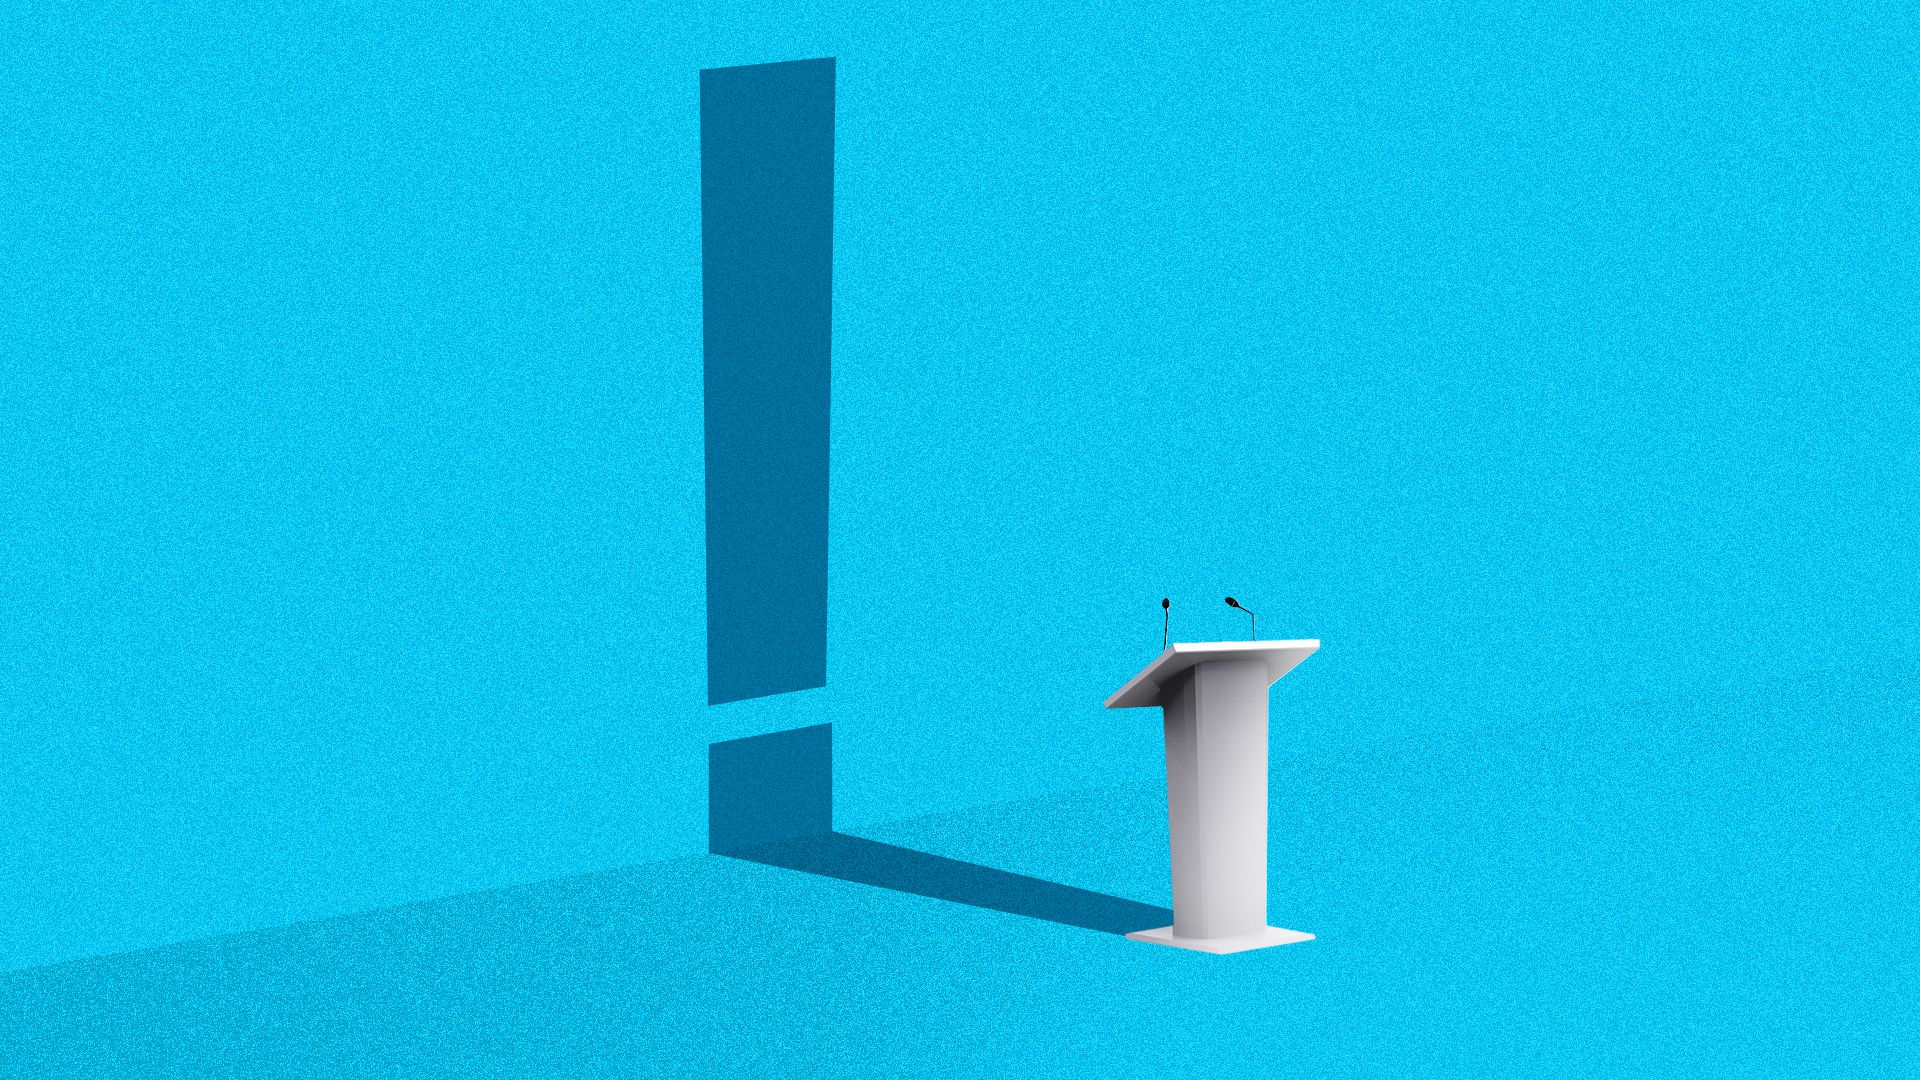 Illustration of a podium casting a shadow in the shape of an exclamation point.